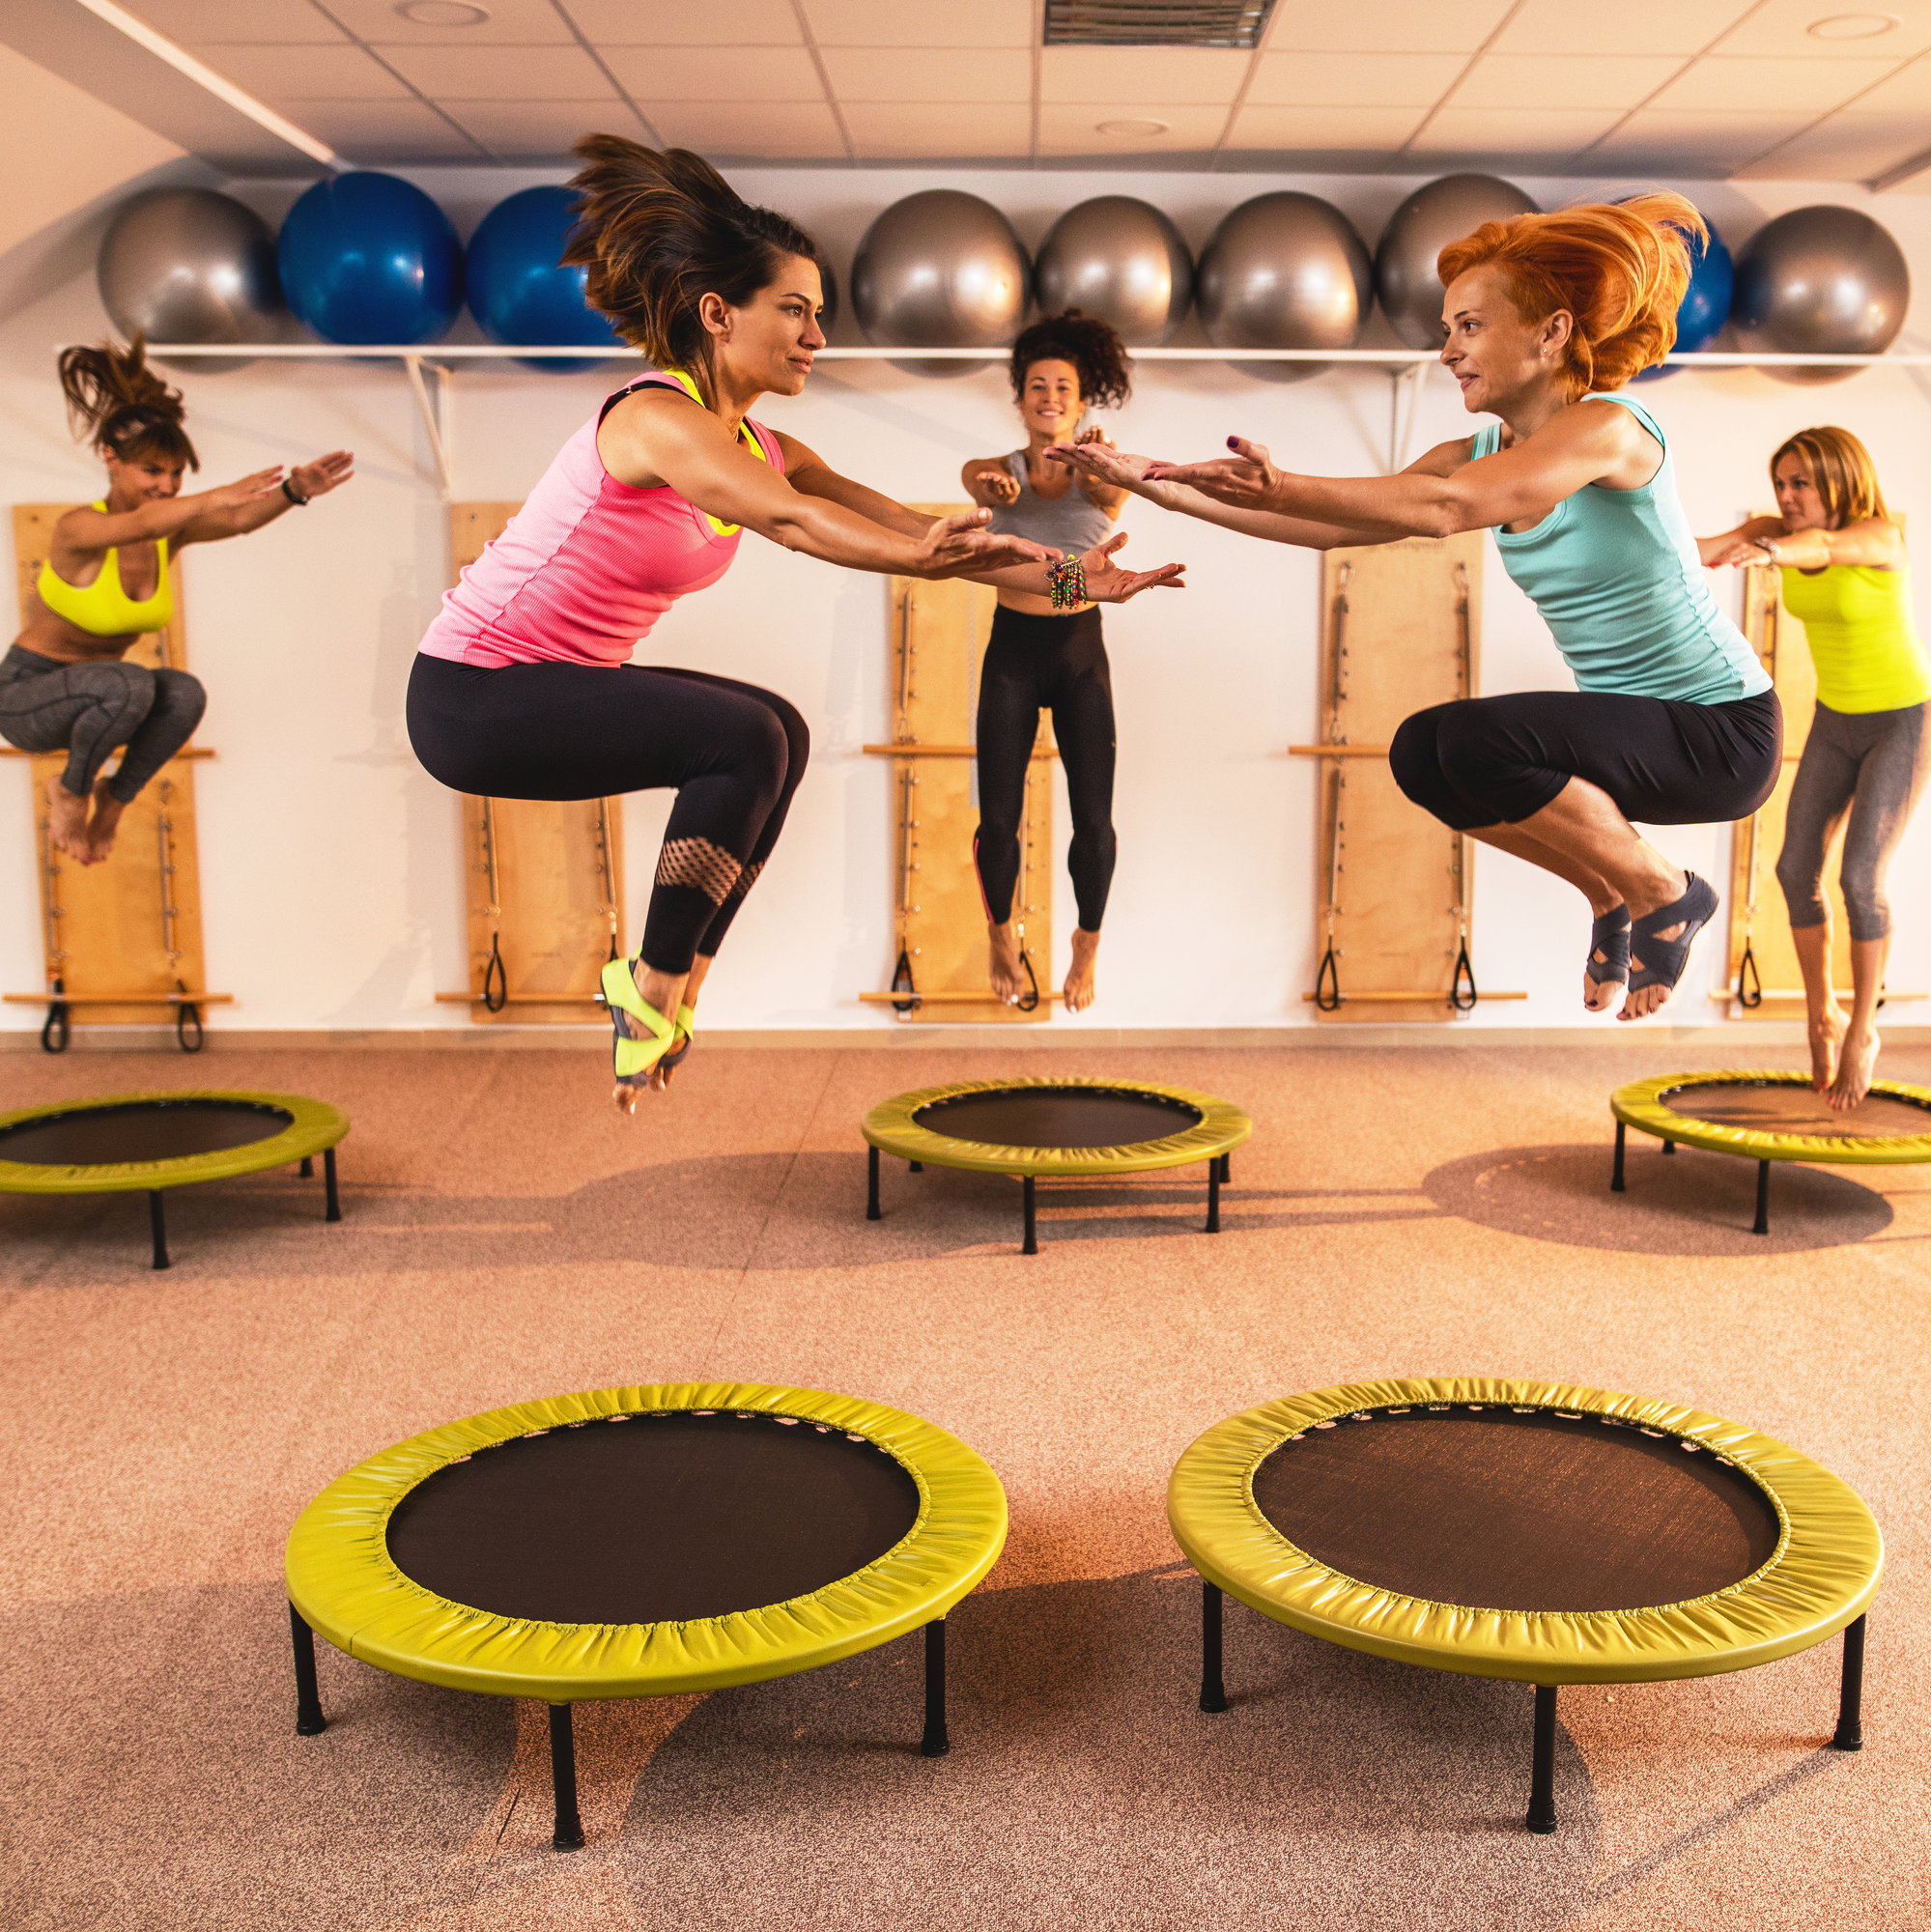 trampoline workout with the bari studio - fitness